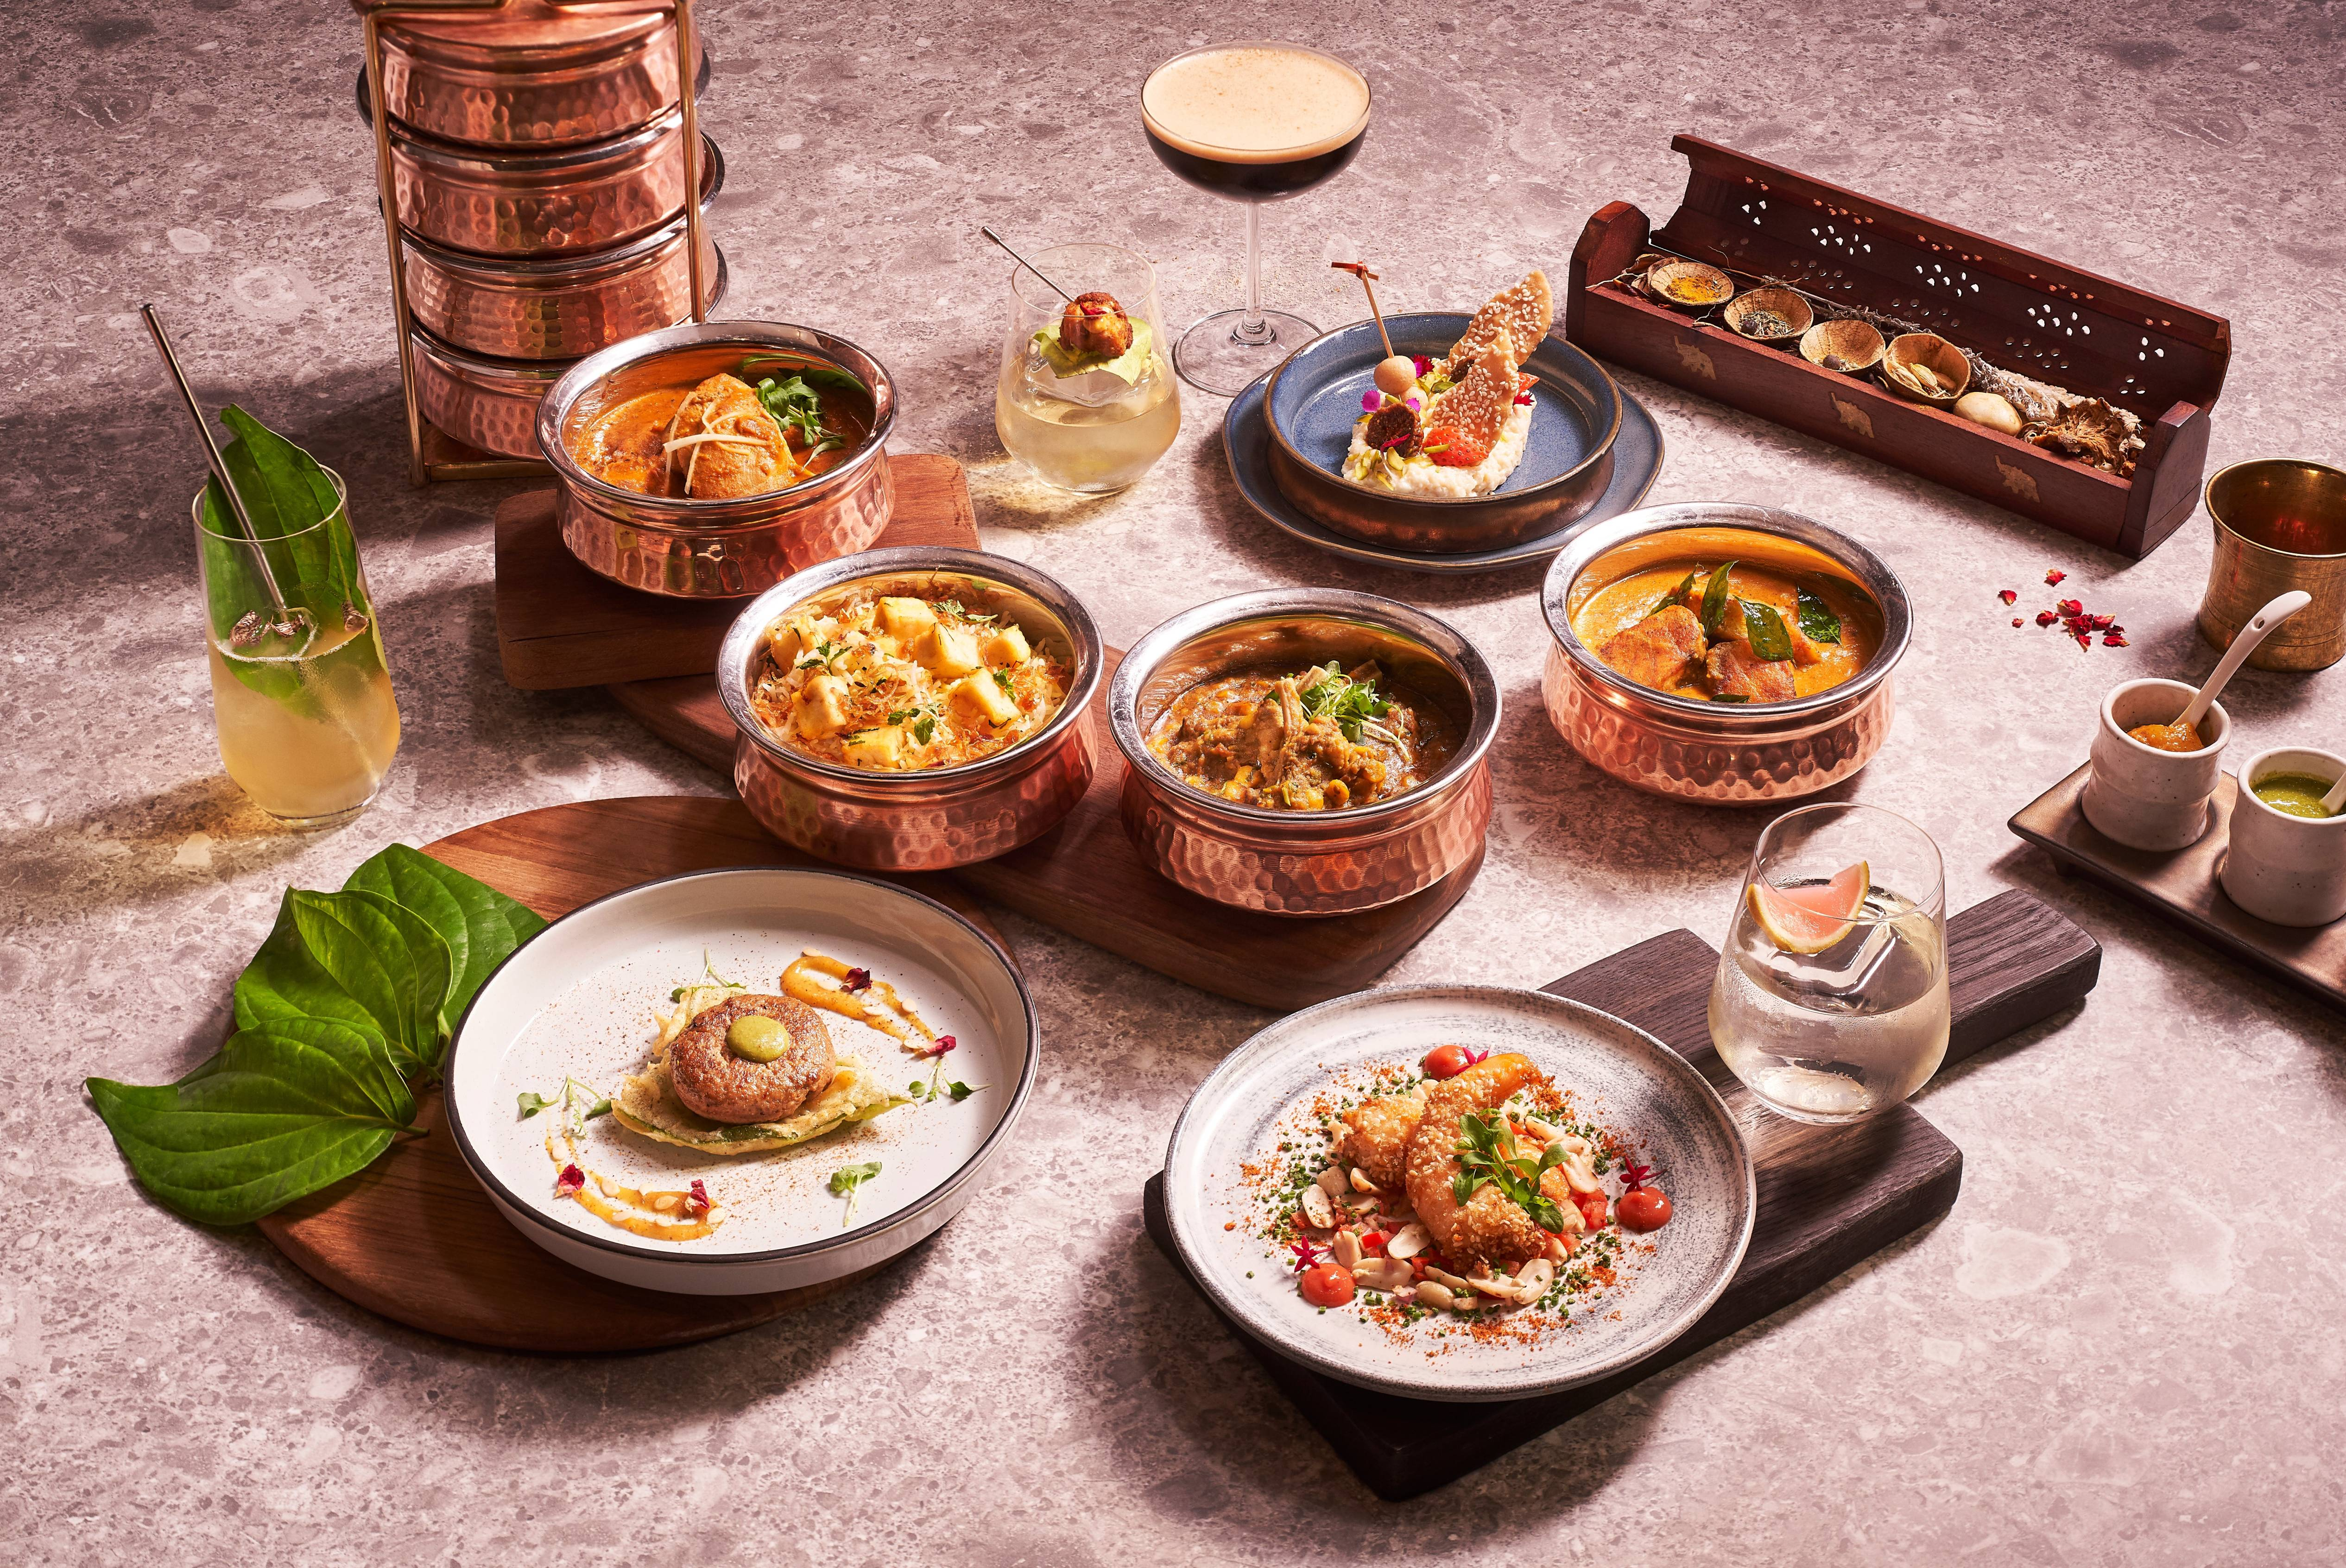 The main course is a selection of familiar Tiffin Room dishes served in their signature tiffin containers